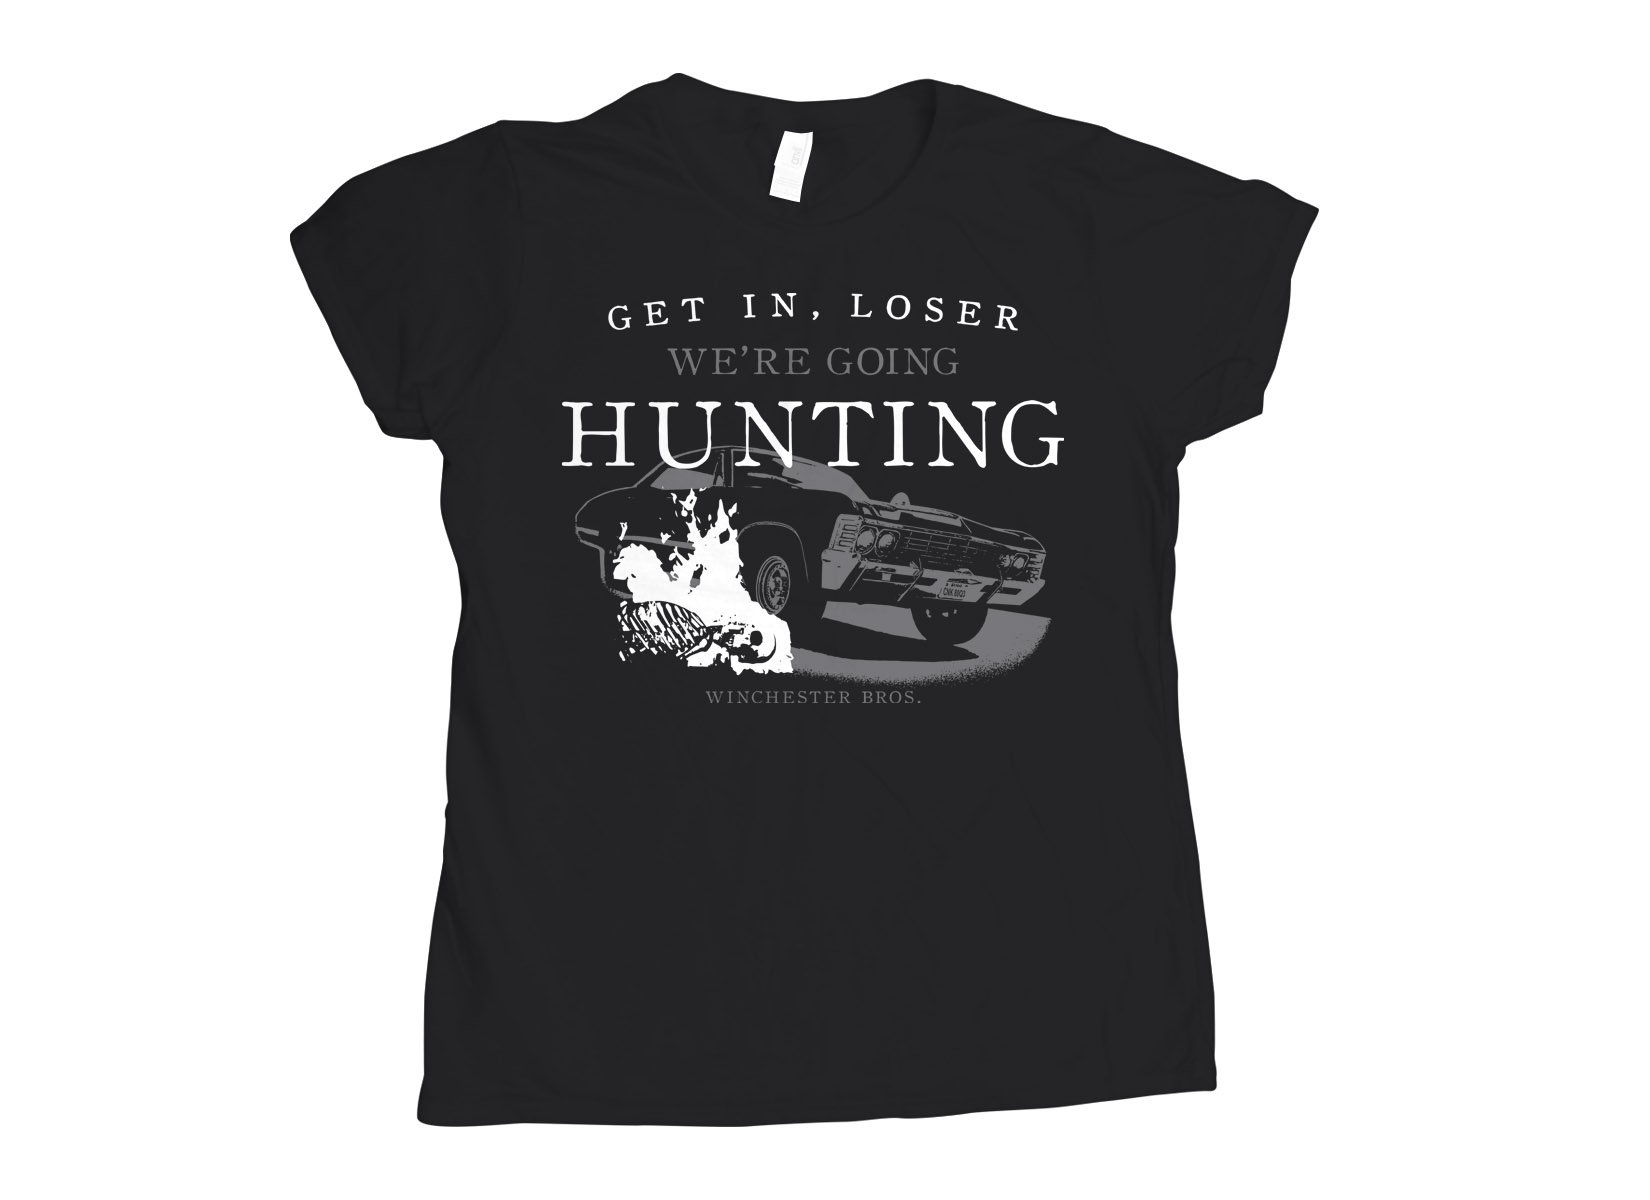 We're Going Hunting on Womens T-Shirt